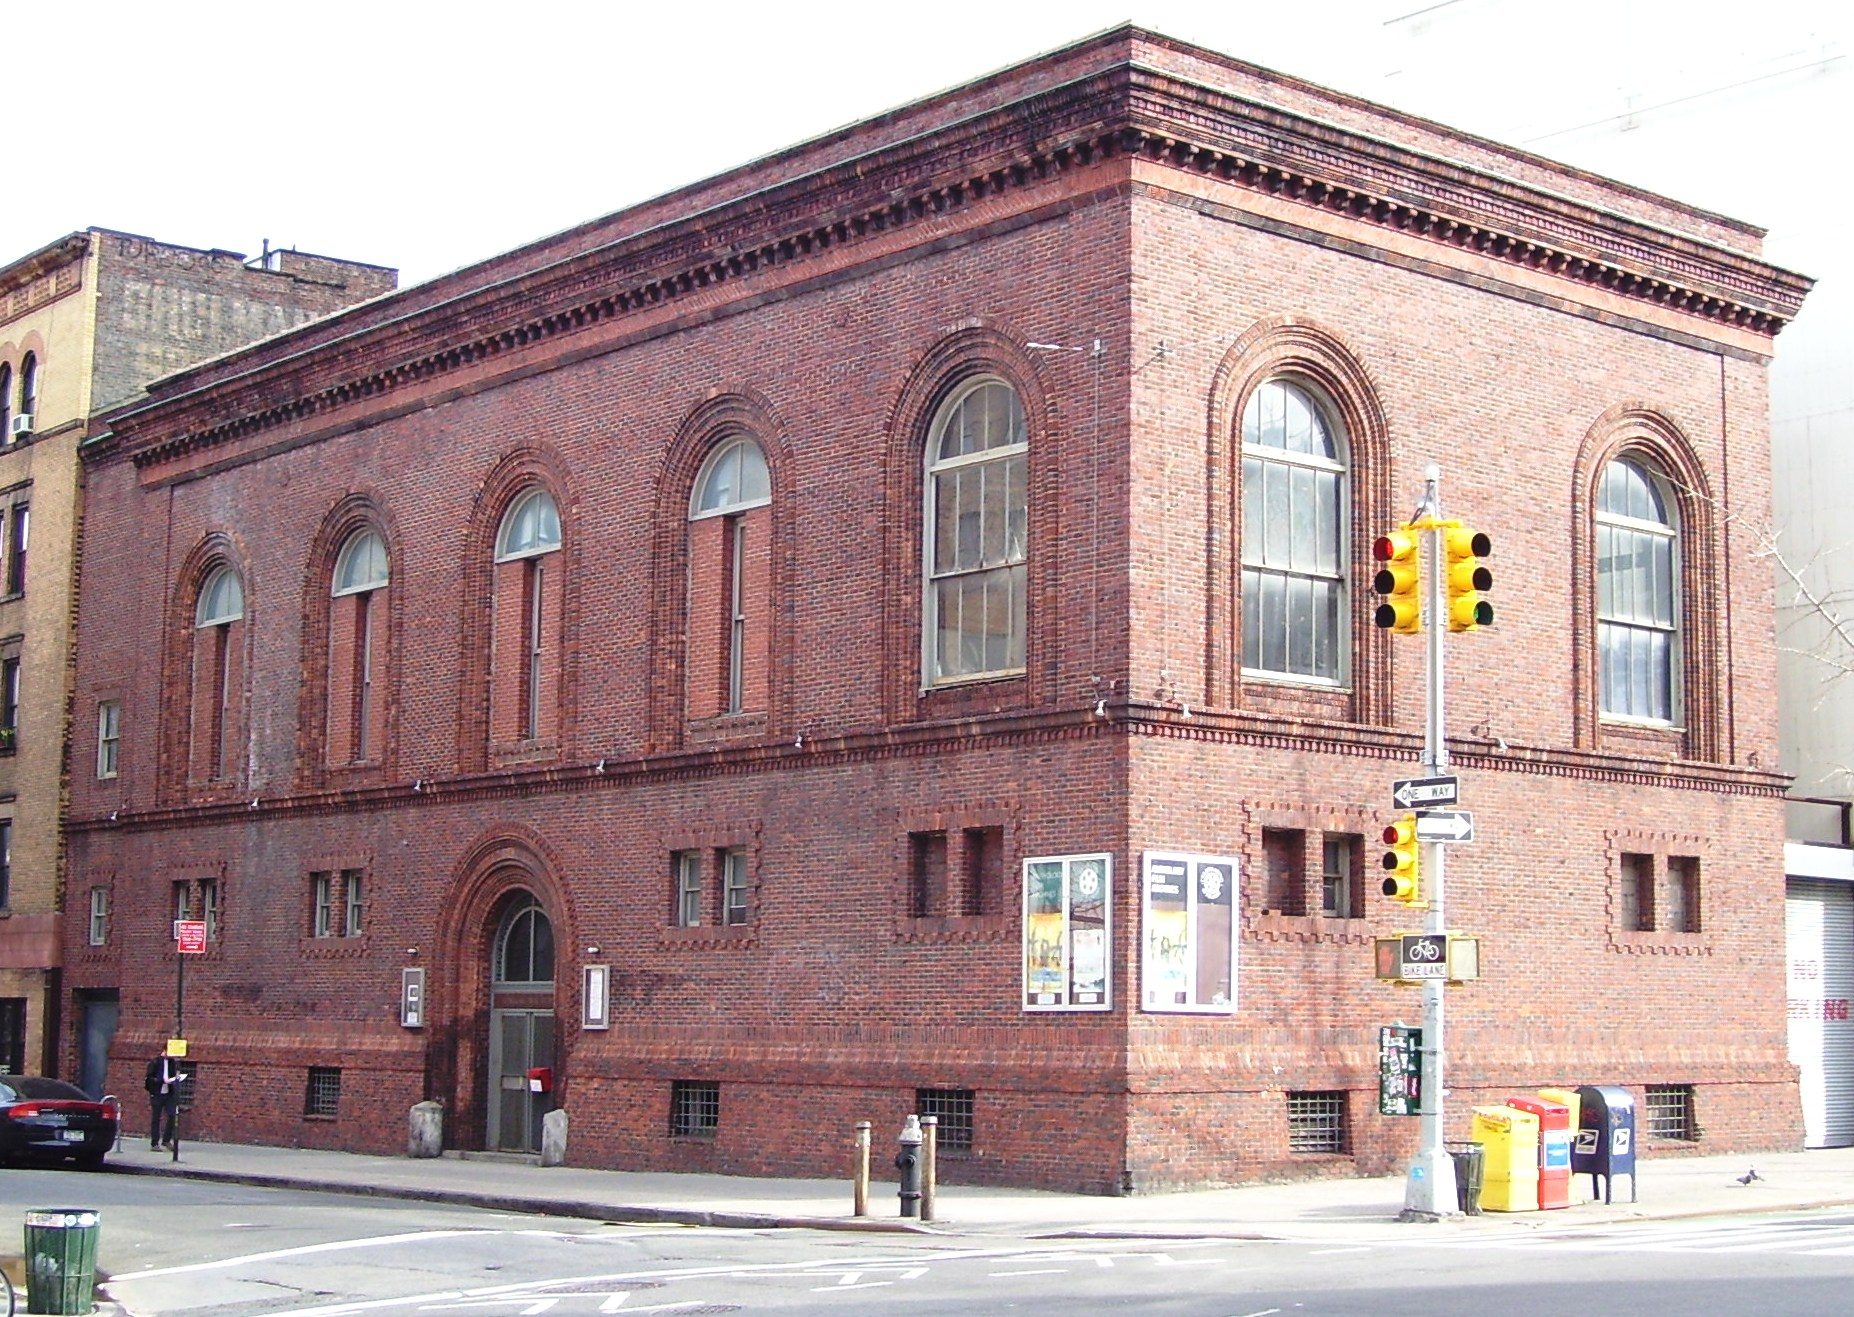 The Anthology Film Archives in New York City.